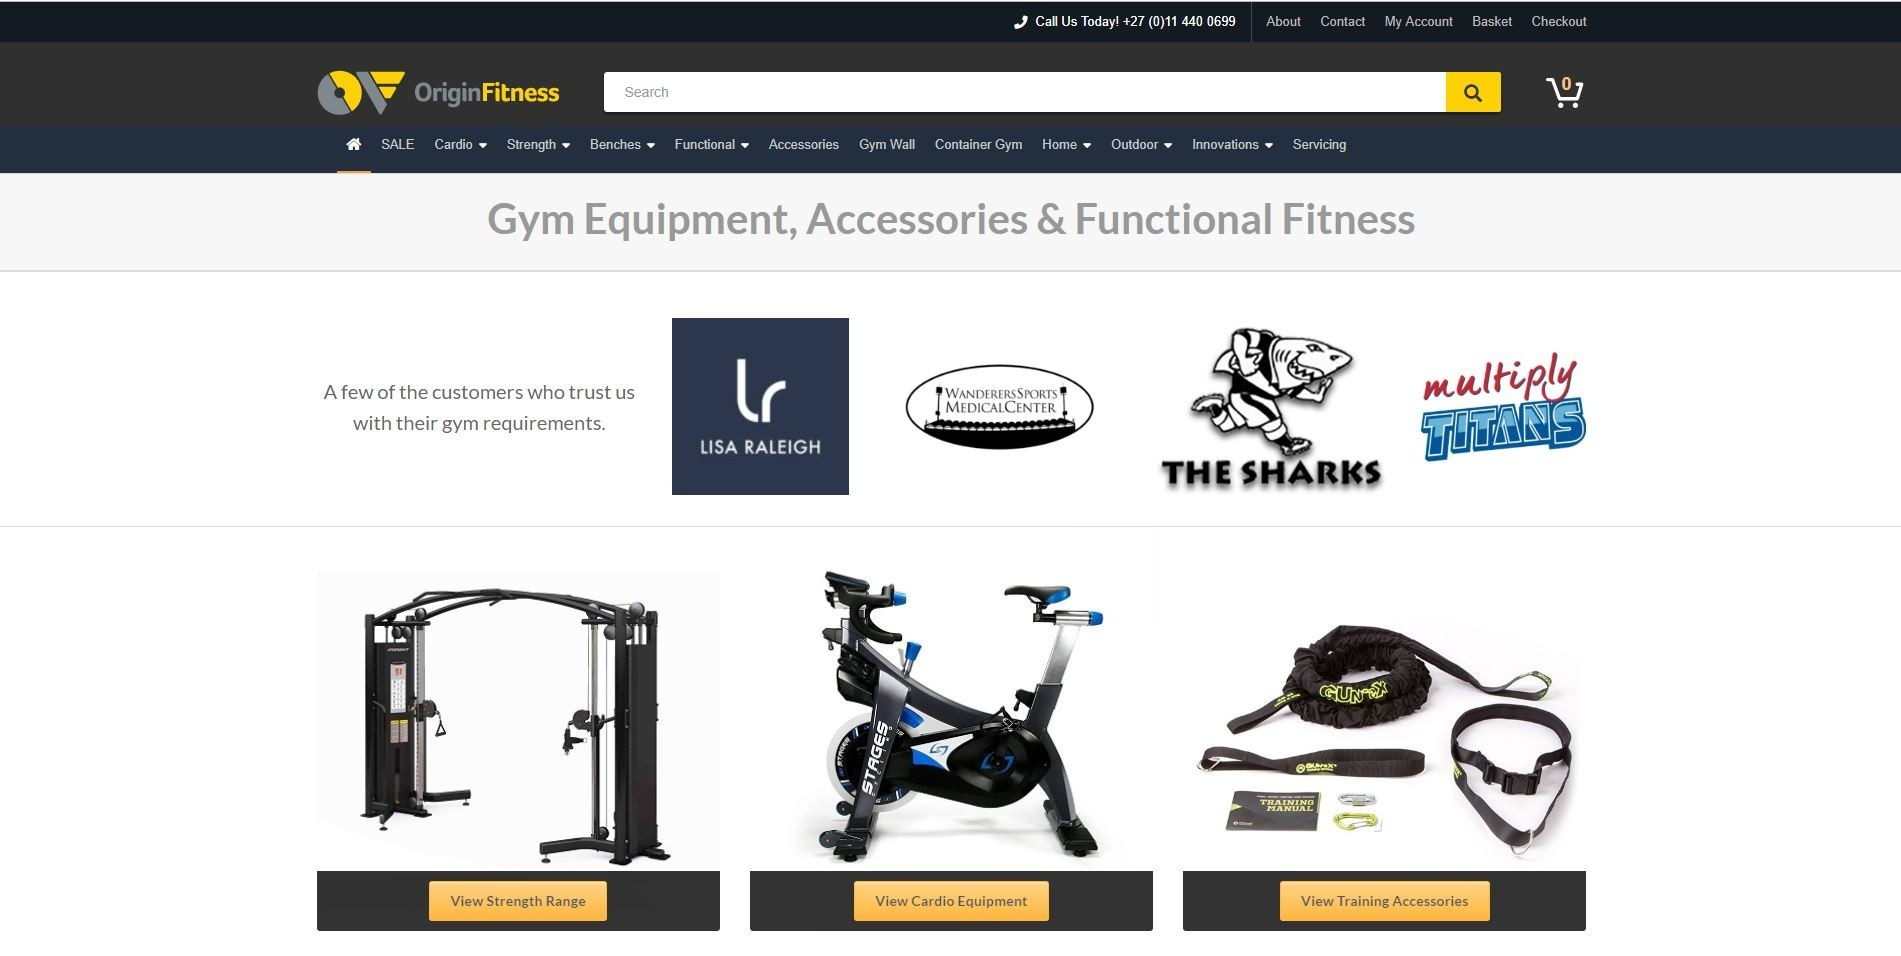 Origin Fitness Home Page